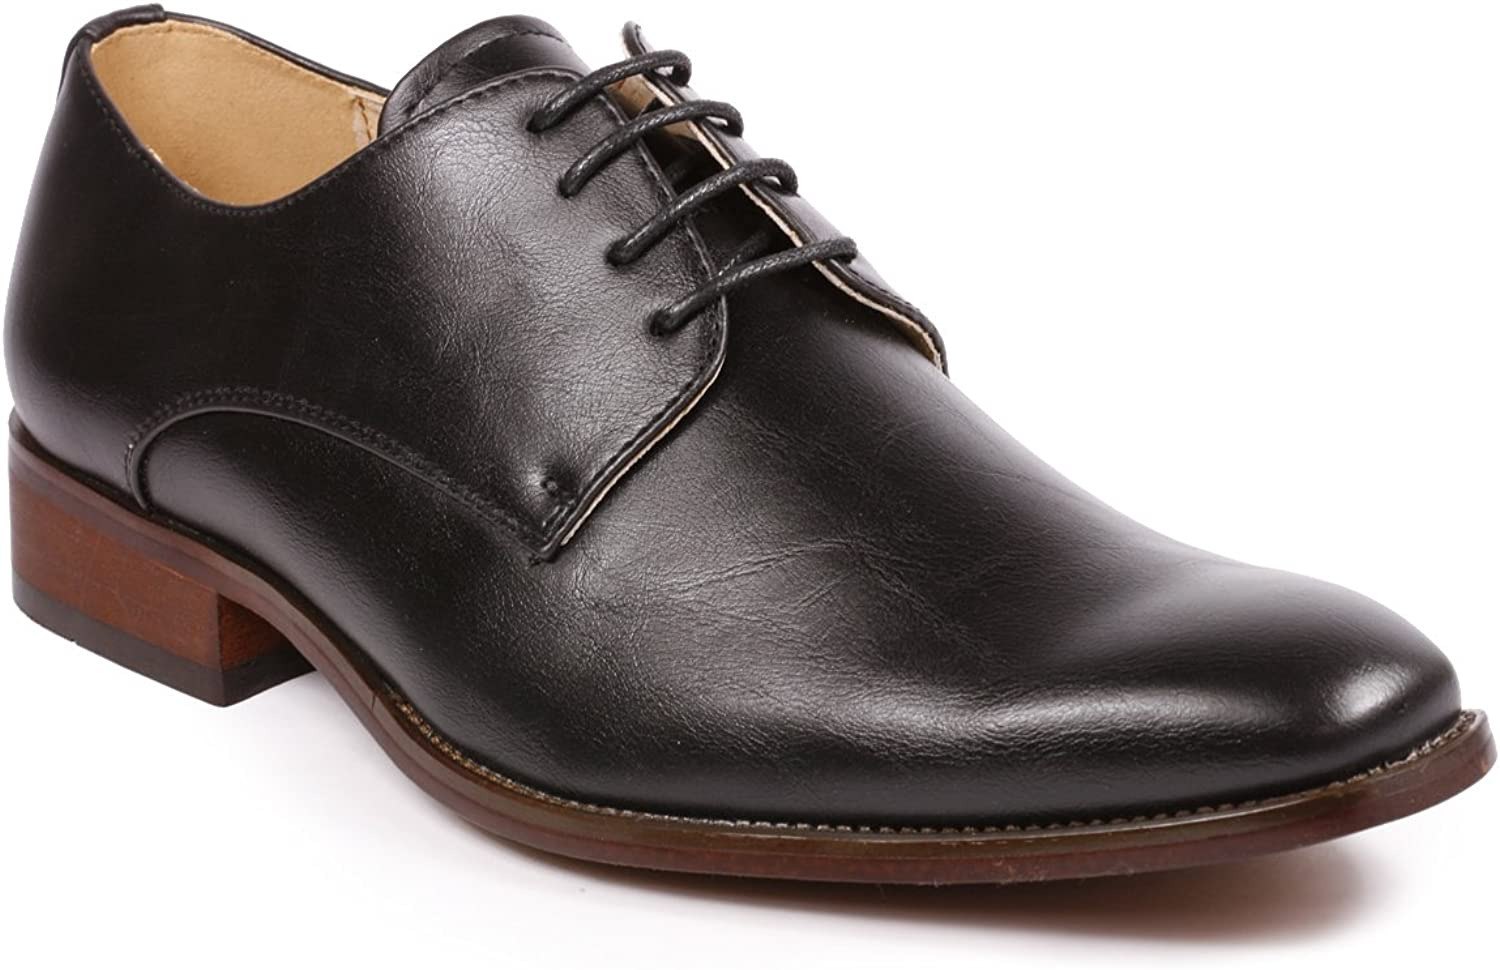 Metrocharm MC111 Lace Up Oxford Classic Dress shoes